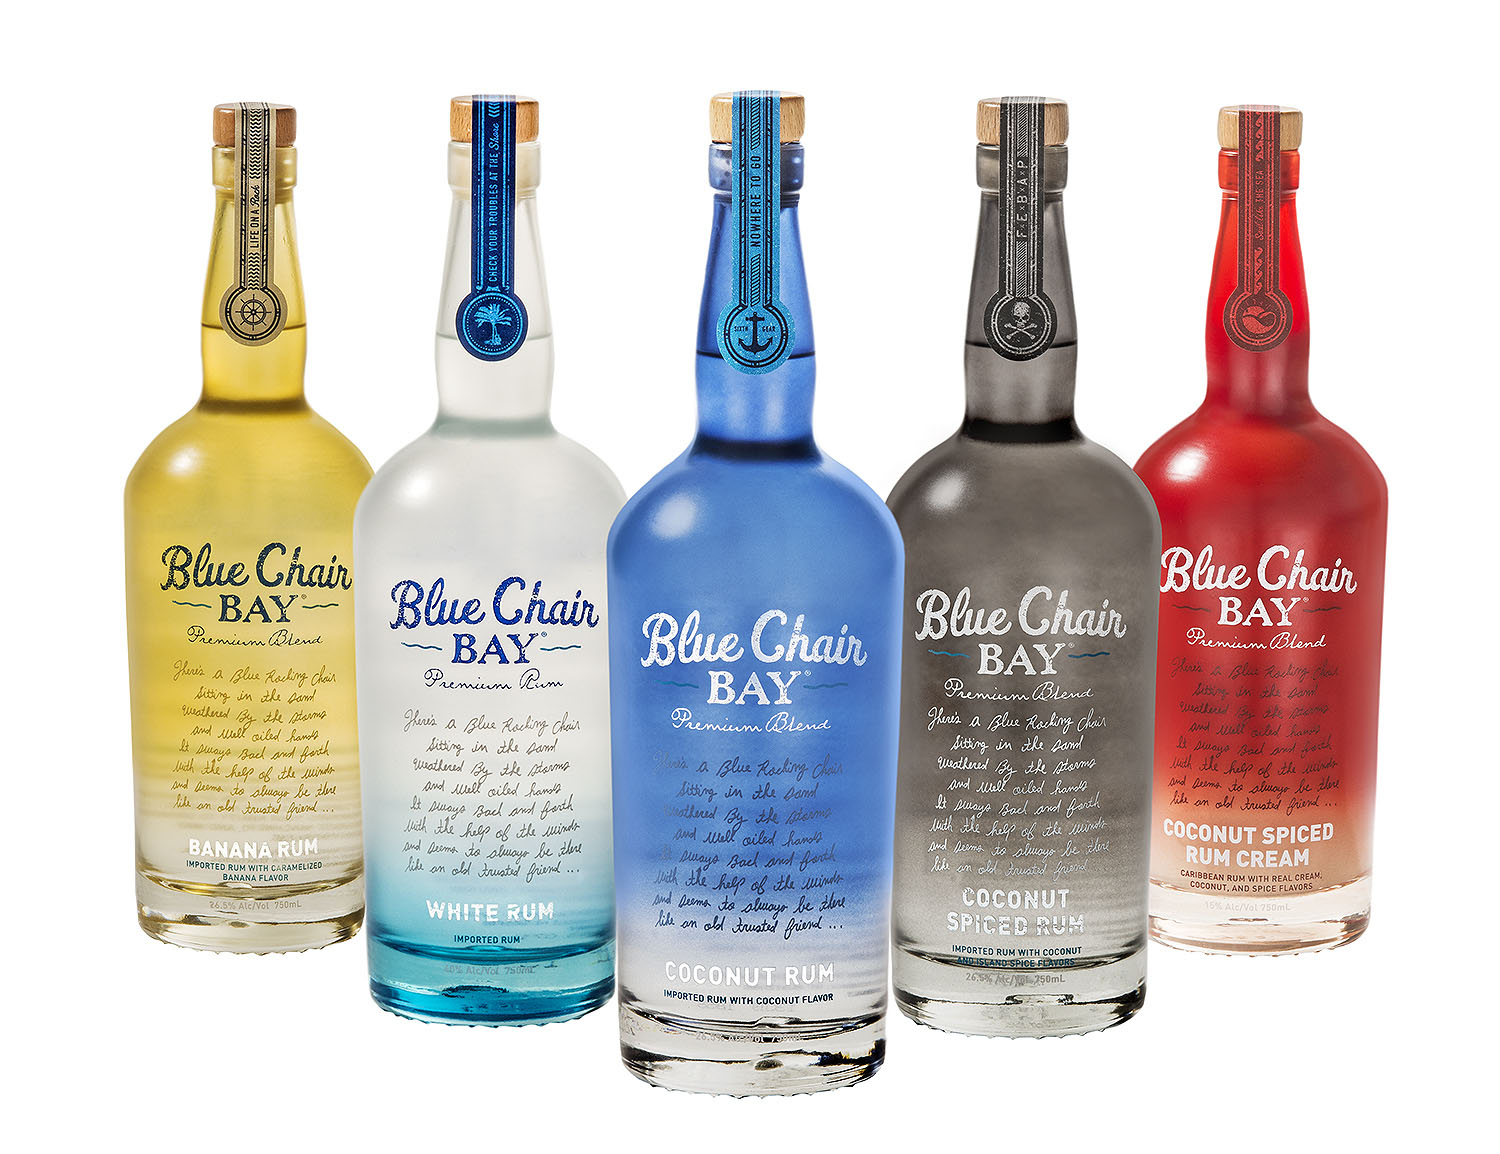 blue chair bay rum gives kenny chesney fans chance to win the ultimate